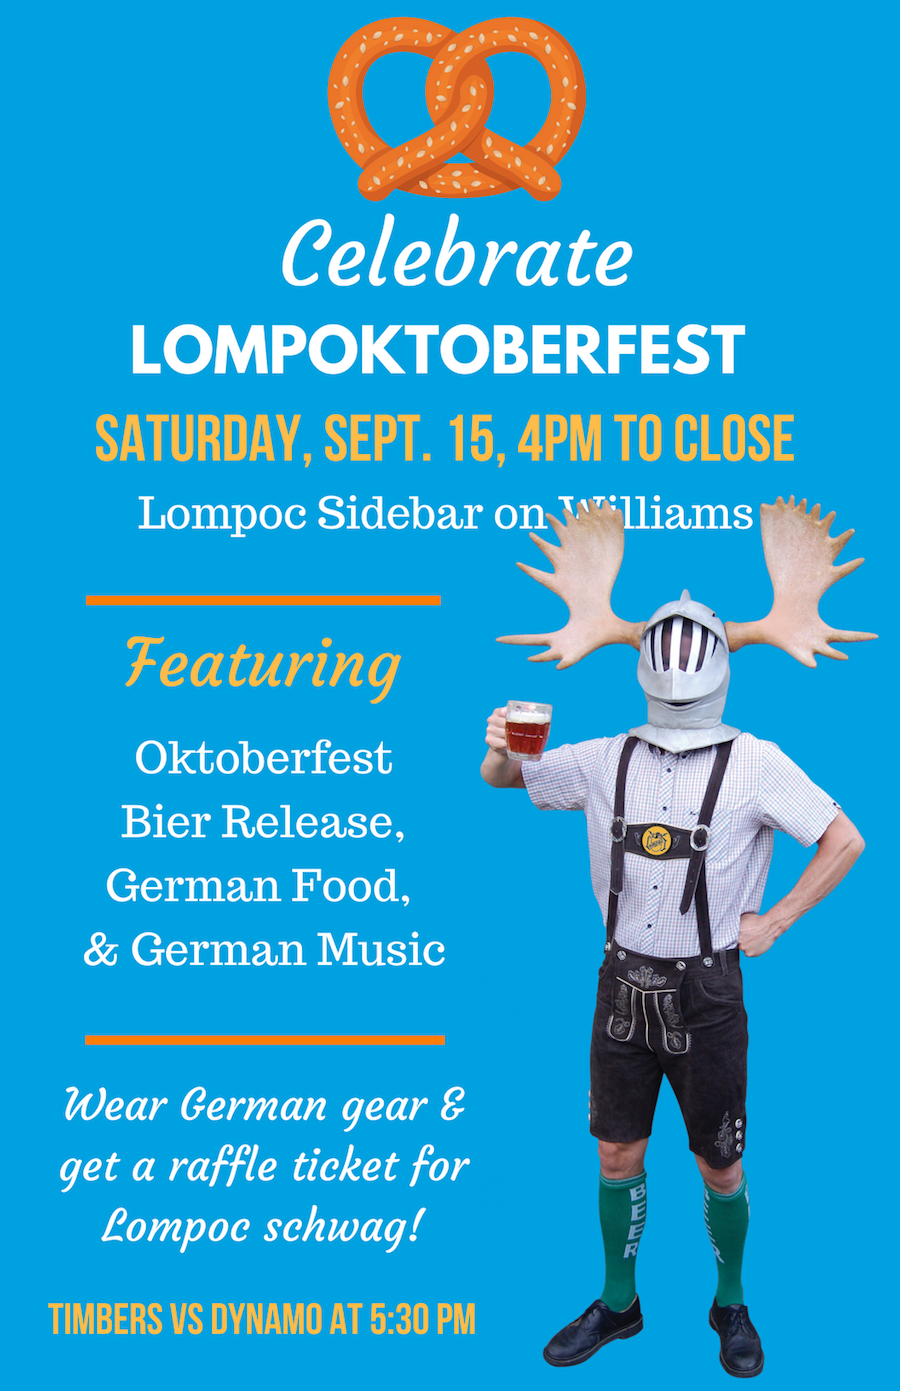 poster courtesy Lompoc Brewing Company